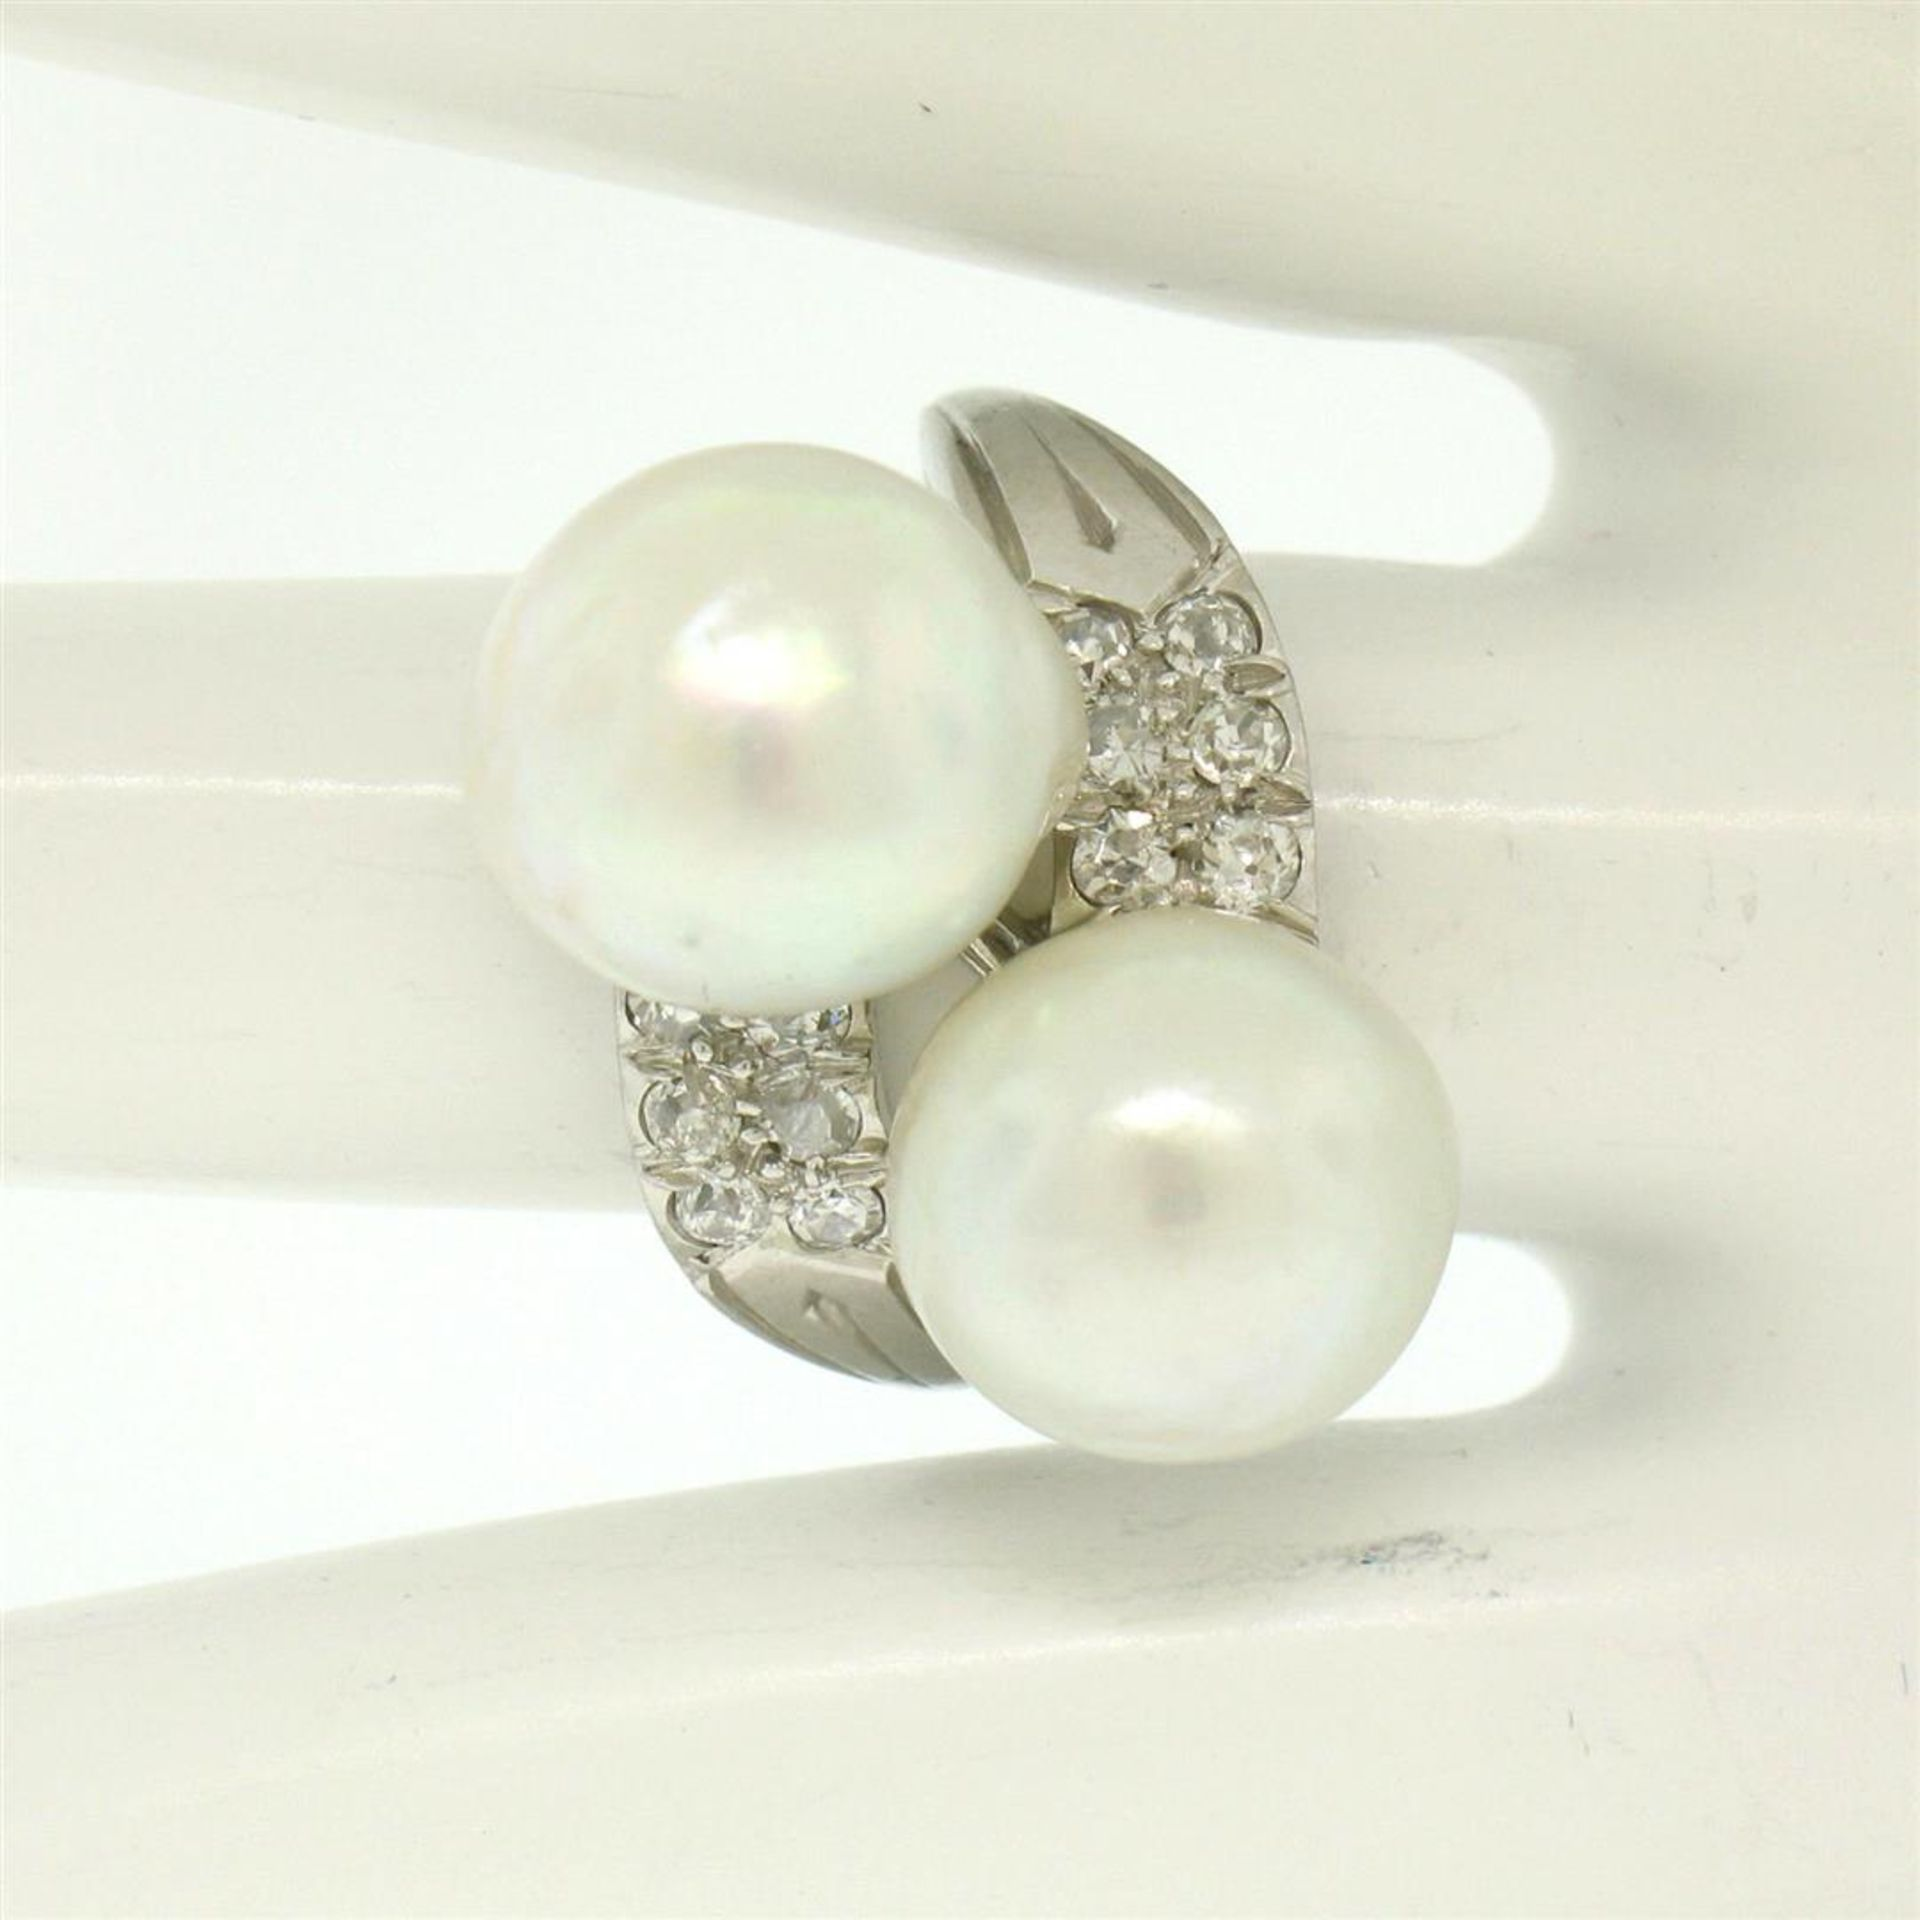 GIA Certified Solid Platinum Pearl & Diamond Bypass Cocktail Ring - Image 4 of 9